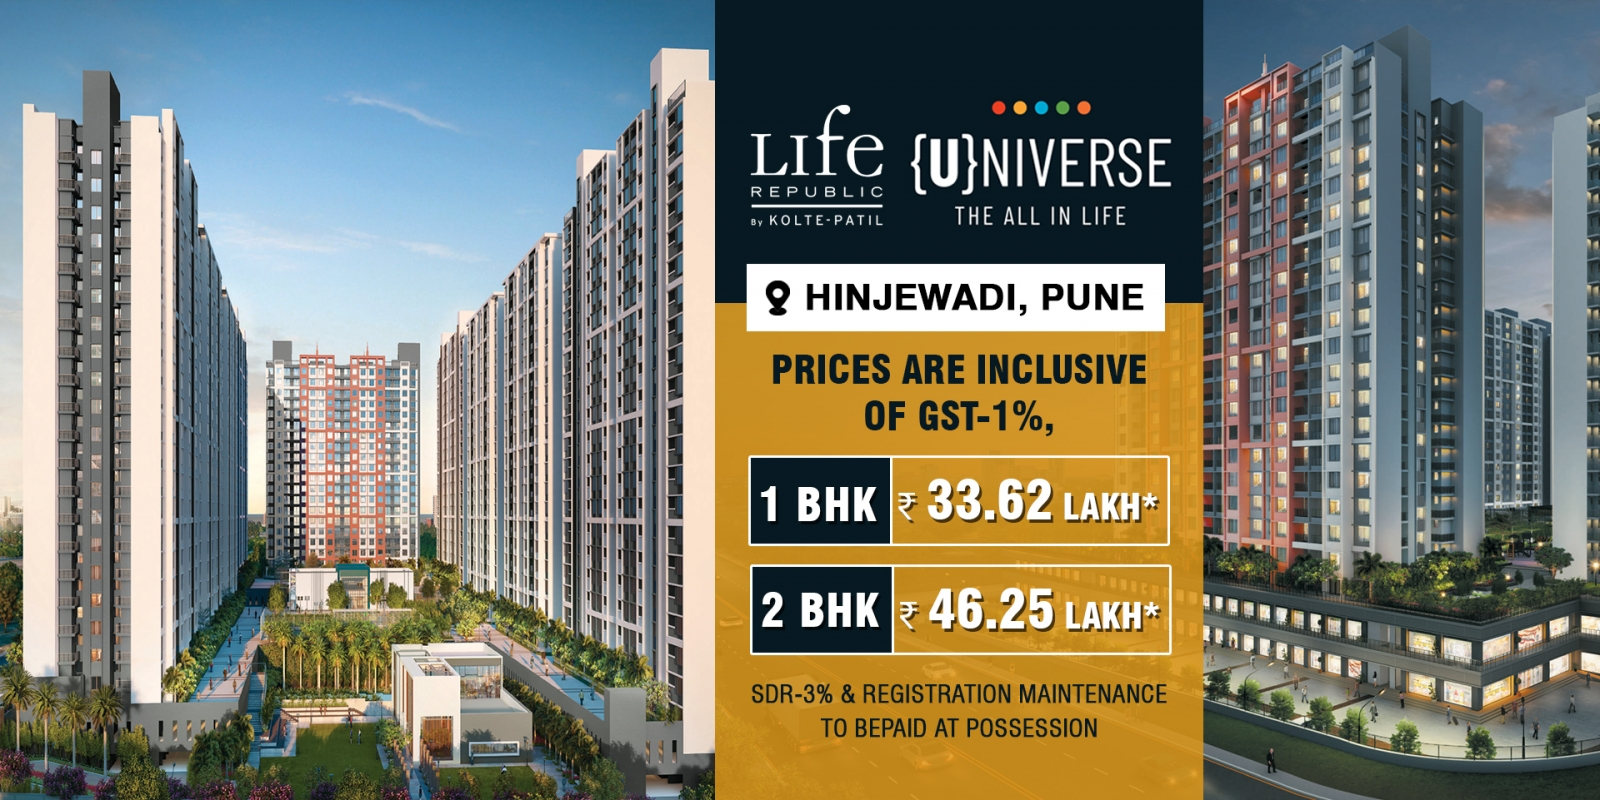 Kolte Patil Life Republic Universe Pune